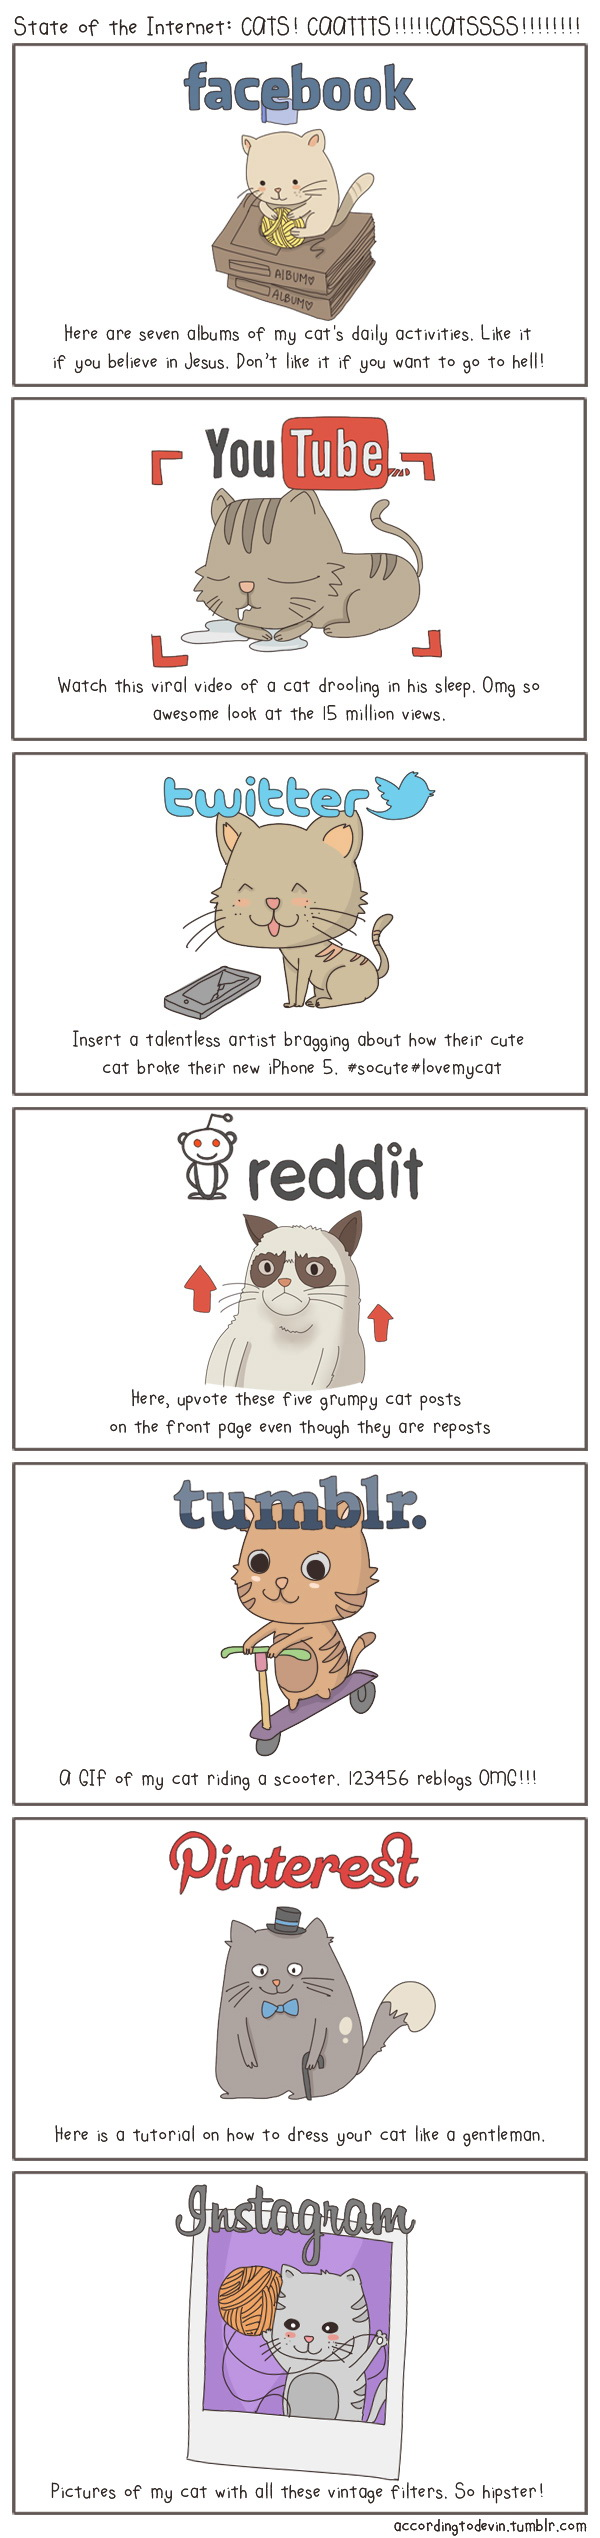 the_state_of_the_internet_with_cats